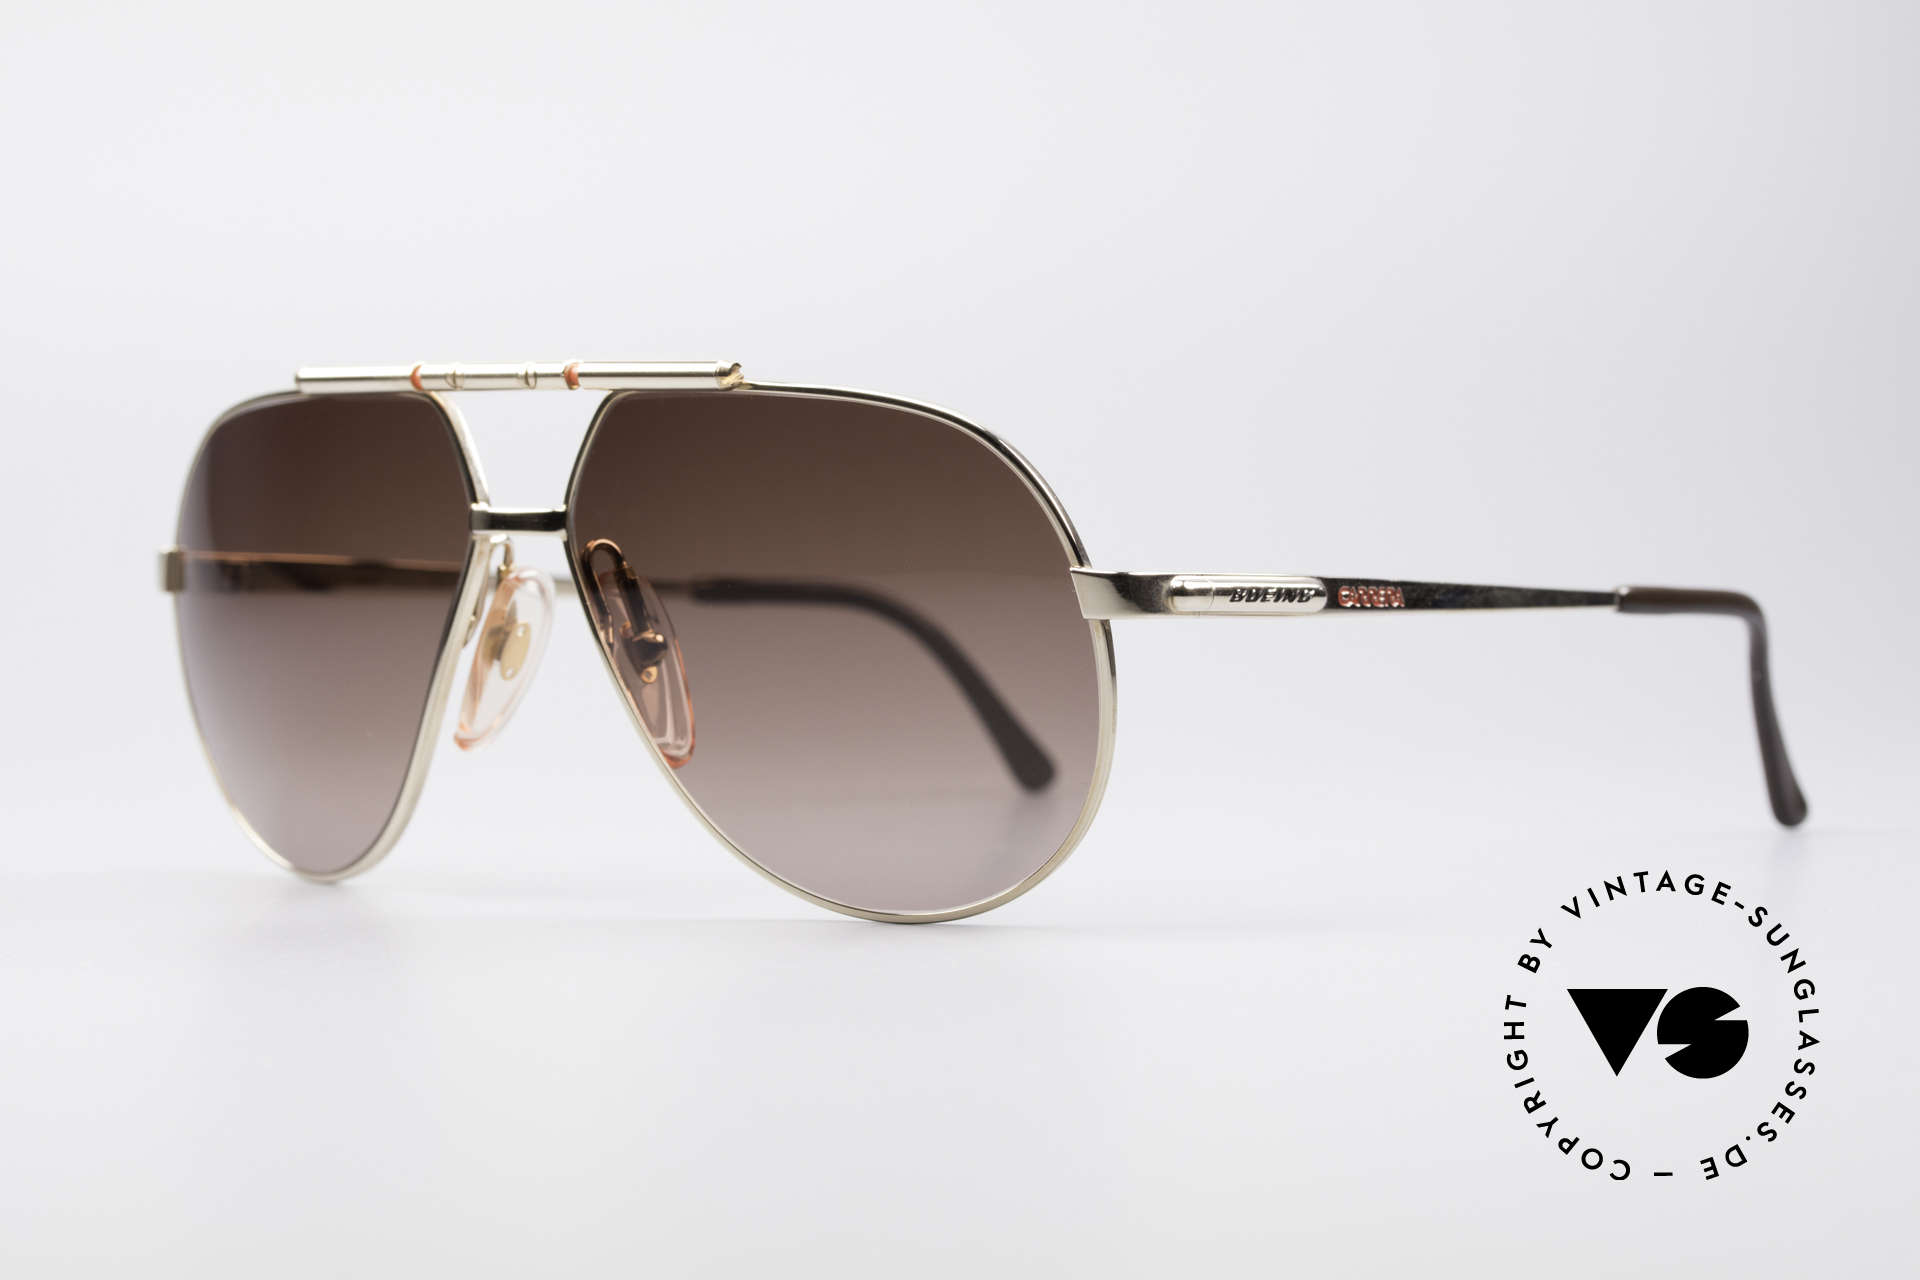 Boeing 5732 High Tech 80's Pilots Shades, hybrid between functionality, quality and lifestyle, Made for Men and Women